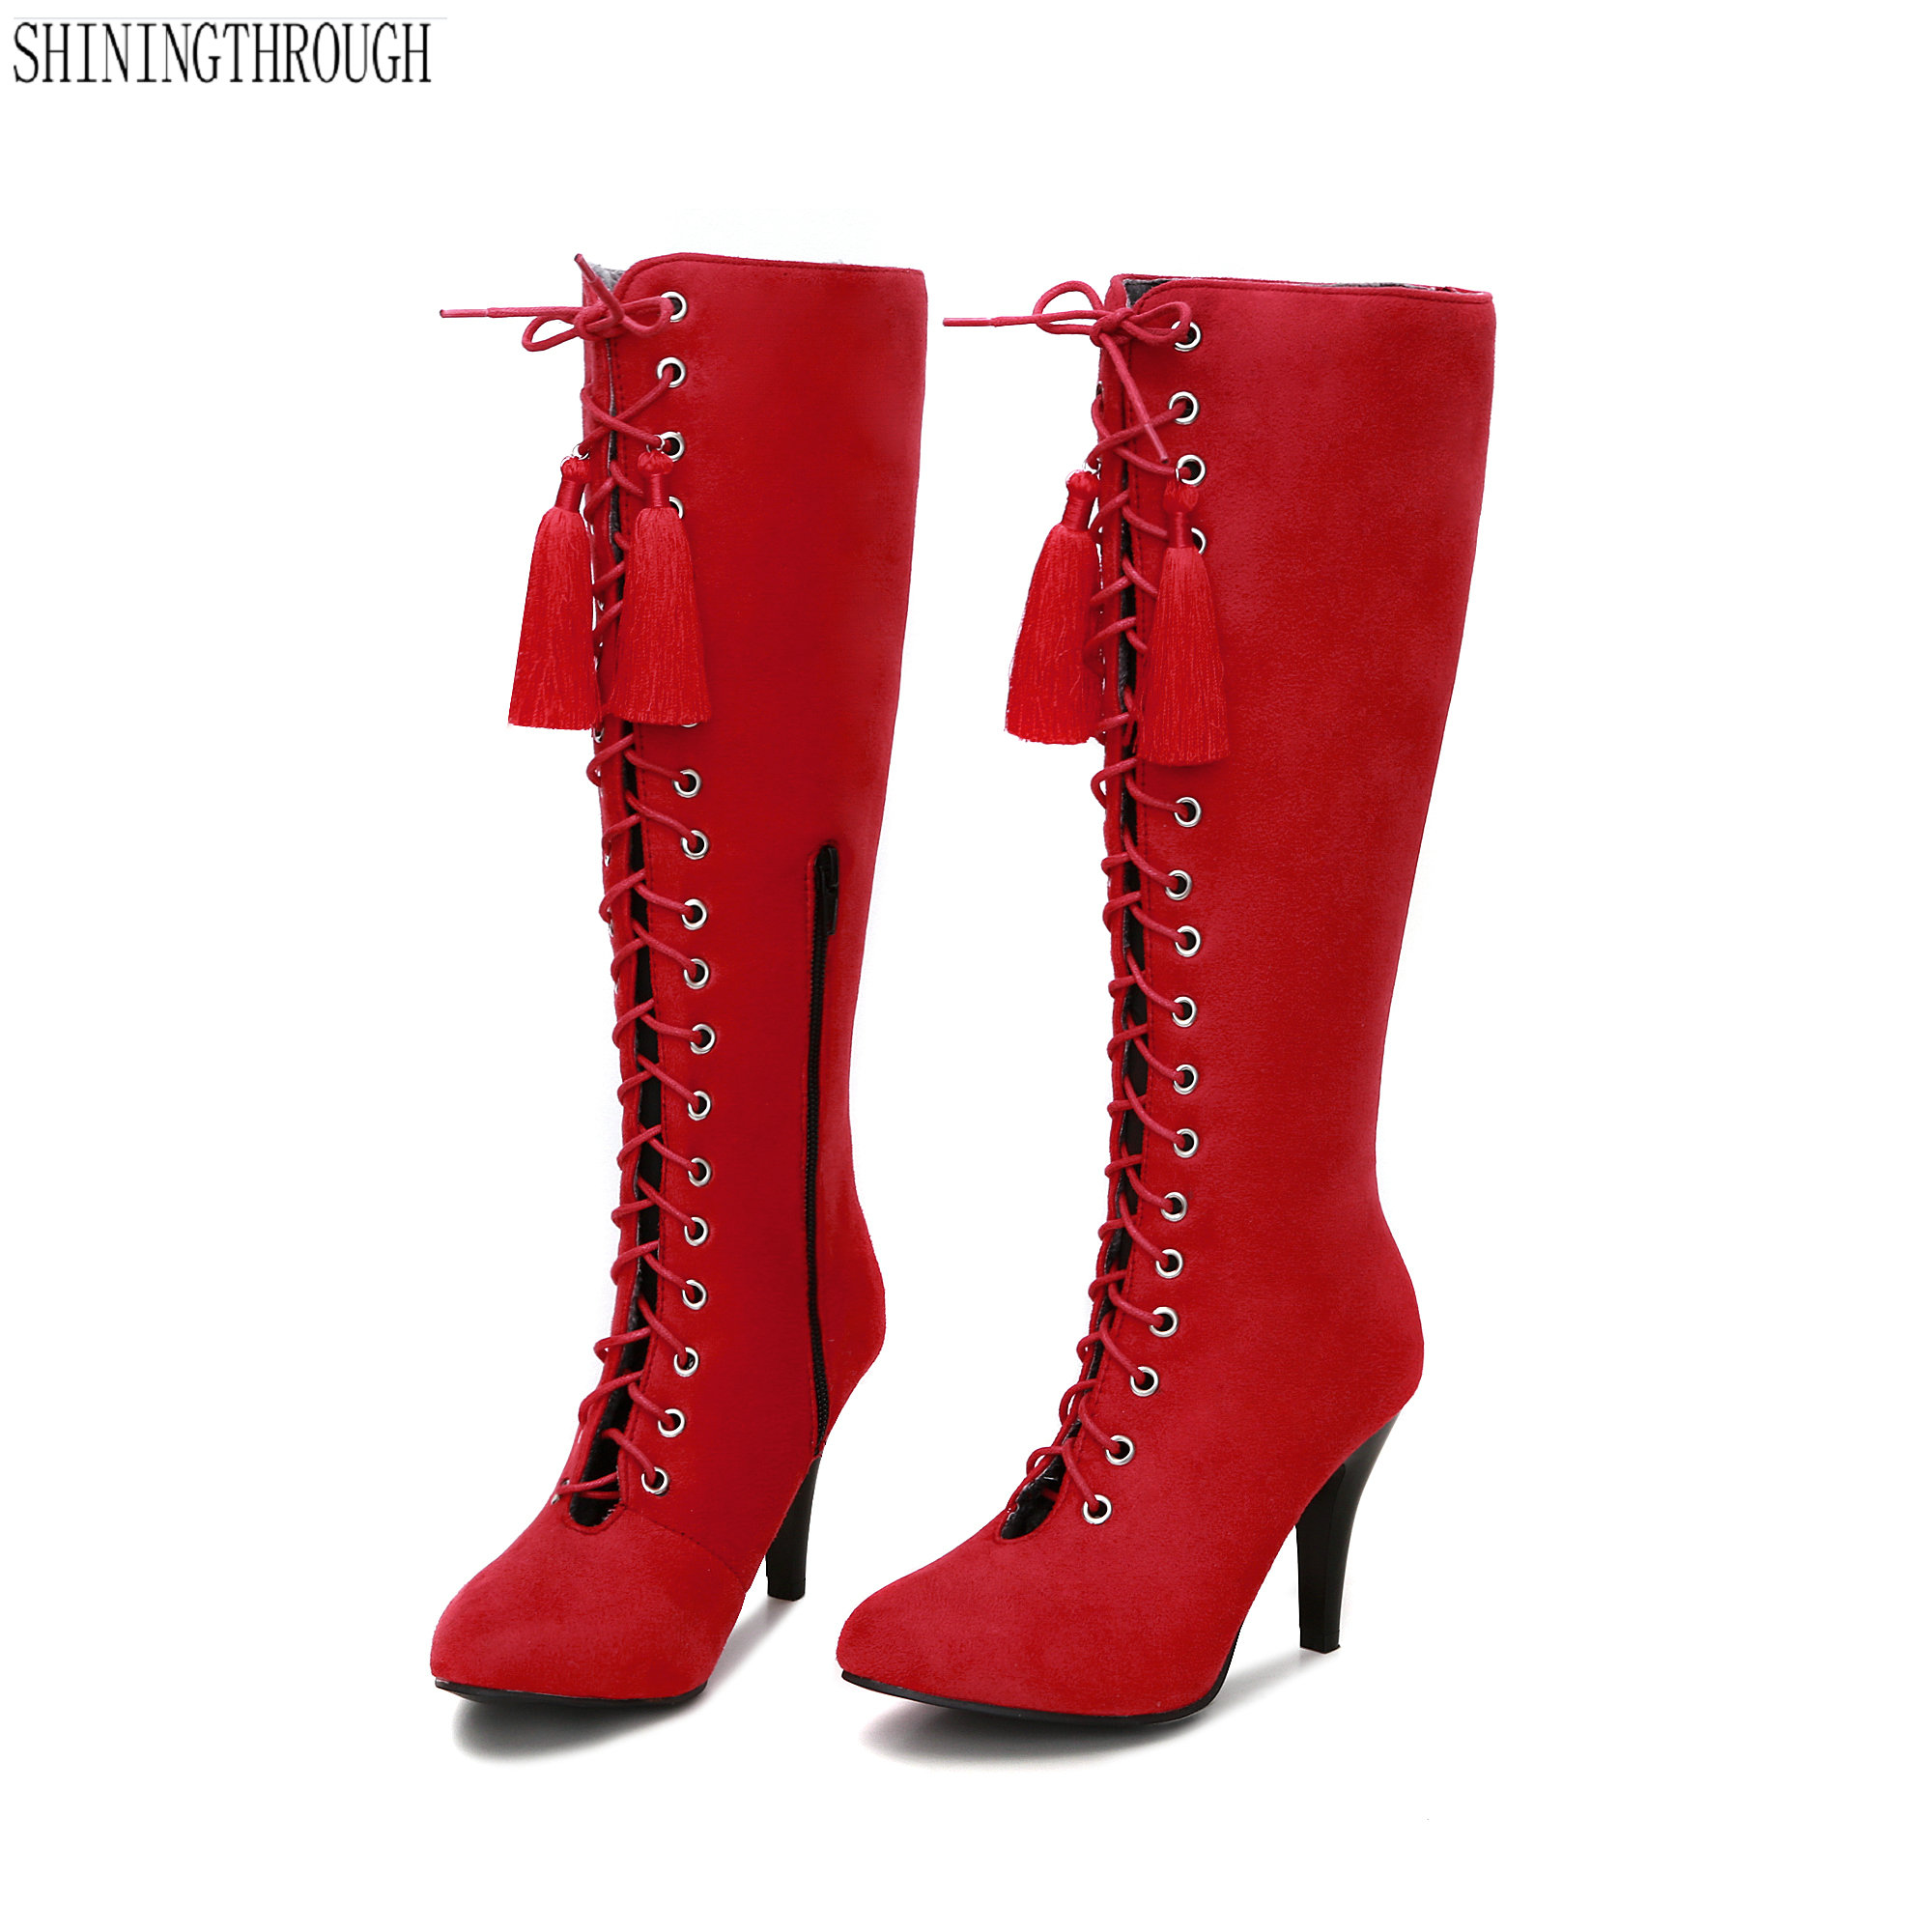 New thin high heels women Boots lace up tassel knee high boots ladies dress club dancing